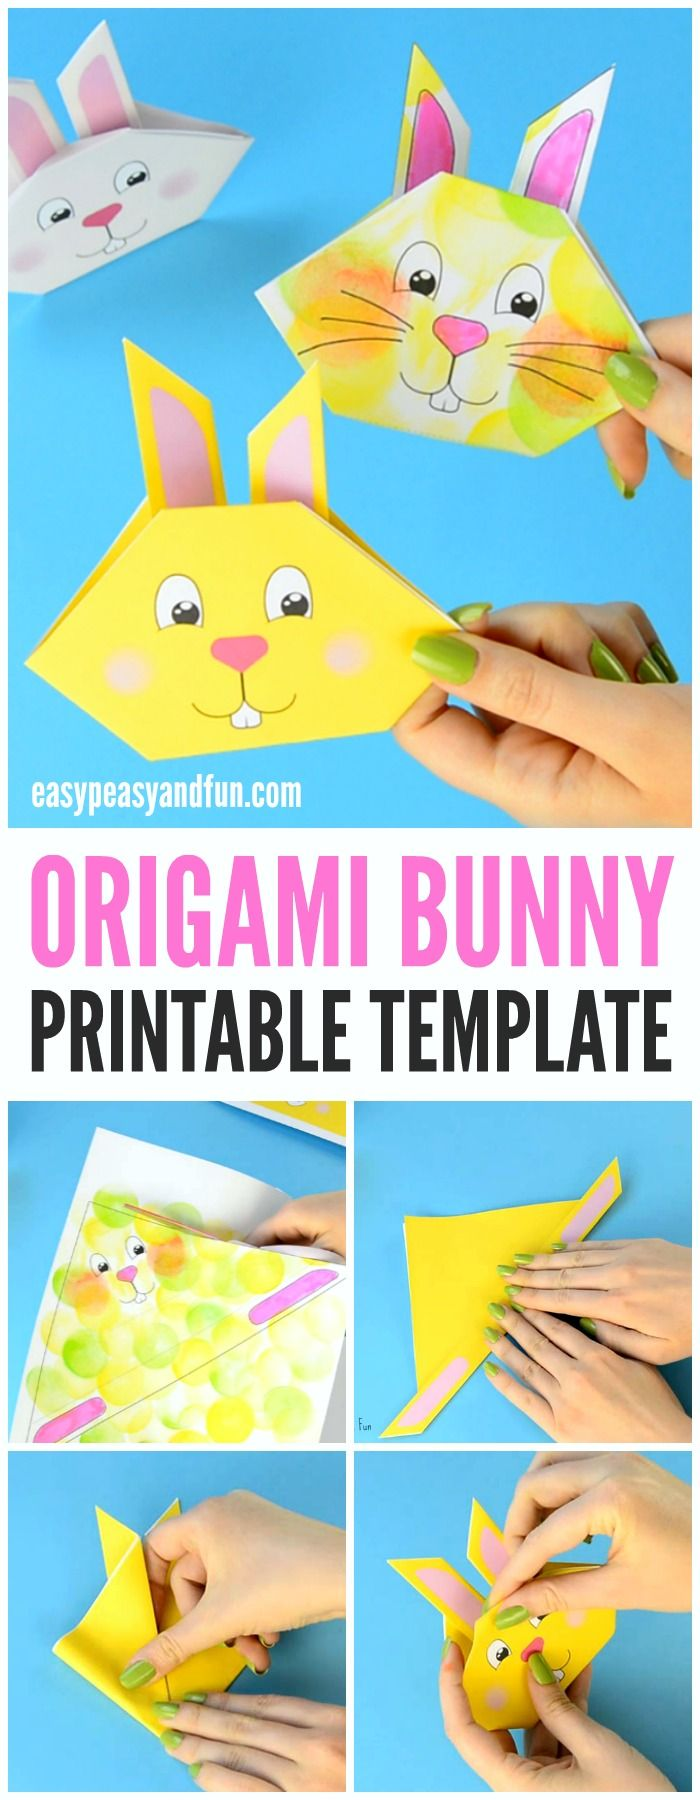 Origami Bunny Tutorial With Printable Template   Pinterest   Para ...